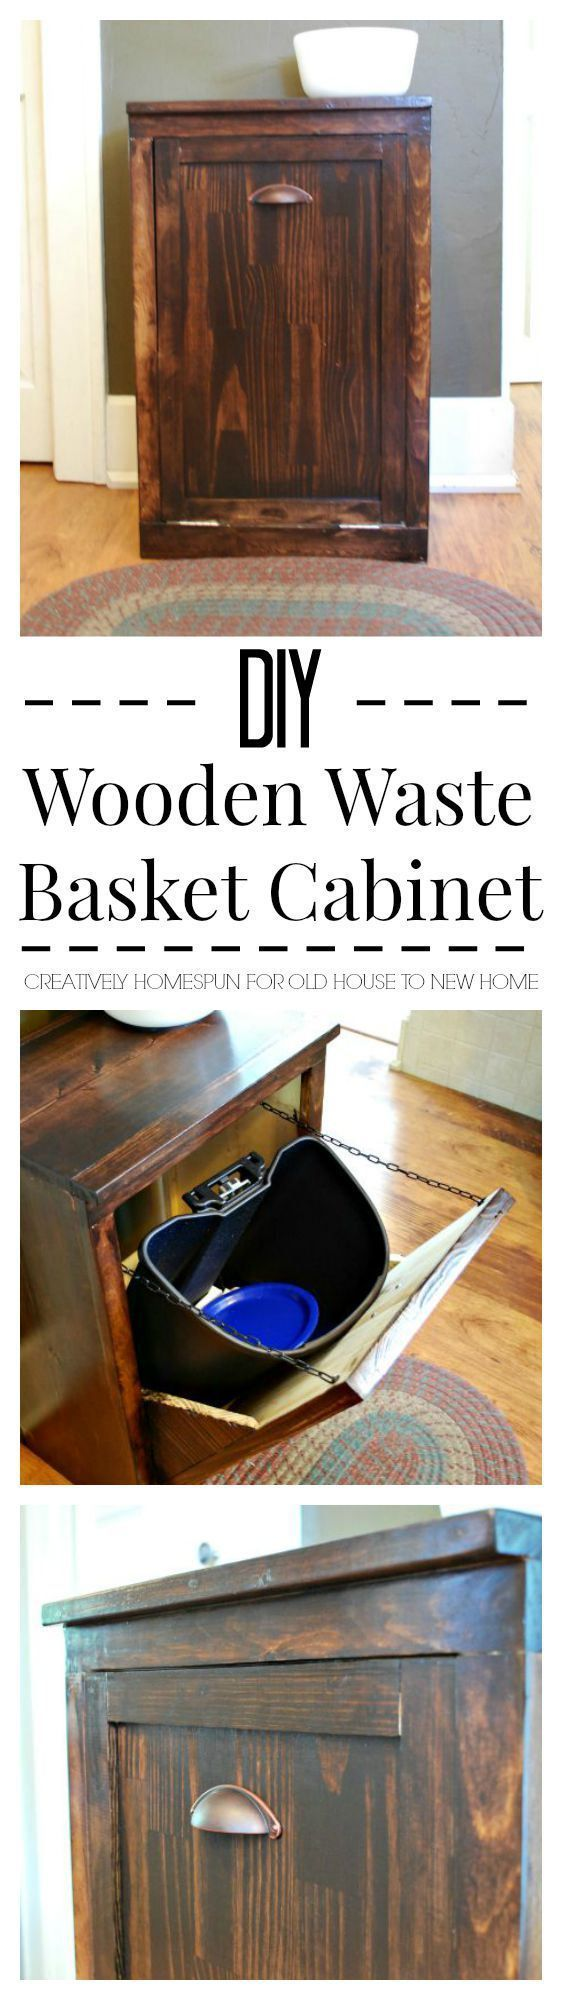 DIY Wooden Waste Basket Cabinet || Creatively Homespun #TheKendigsNewDigs #diy #kitchenreno #oldhousetonewhome